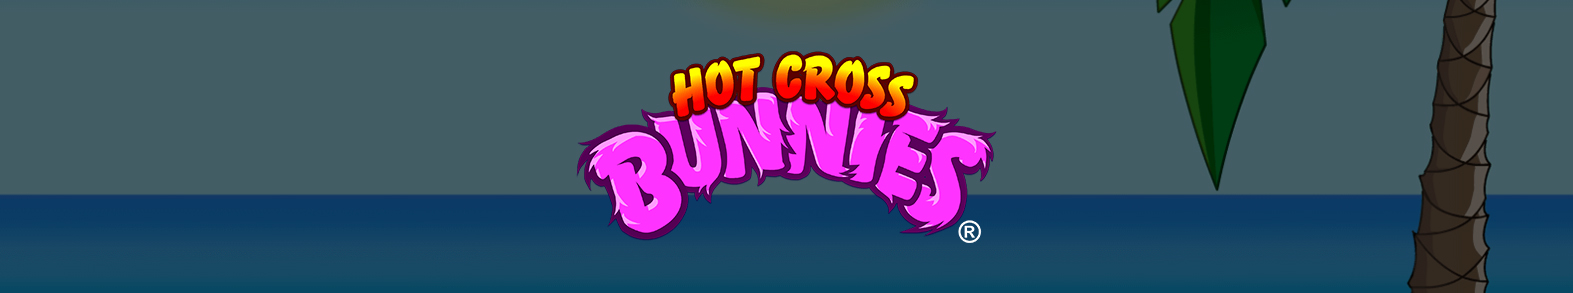 Hot-Cross-Bunnies